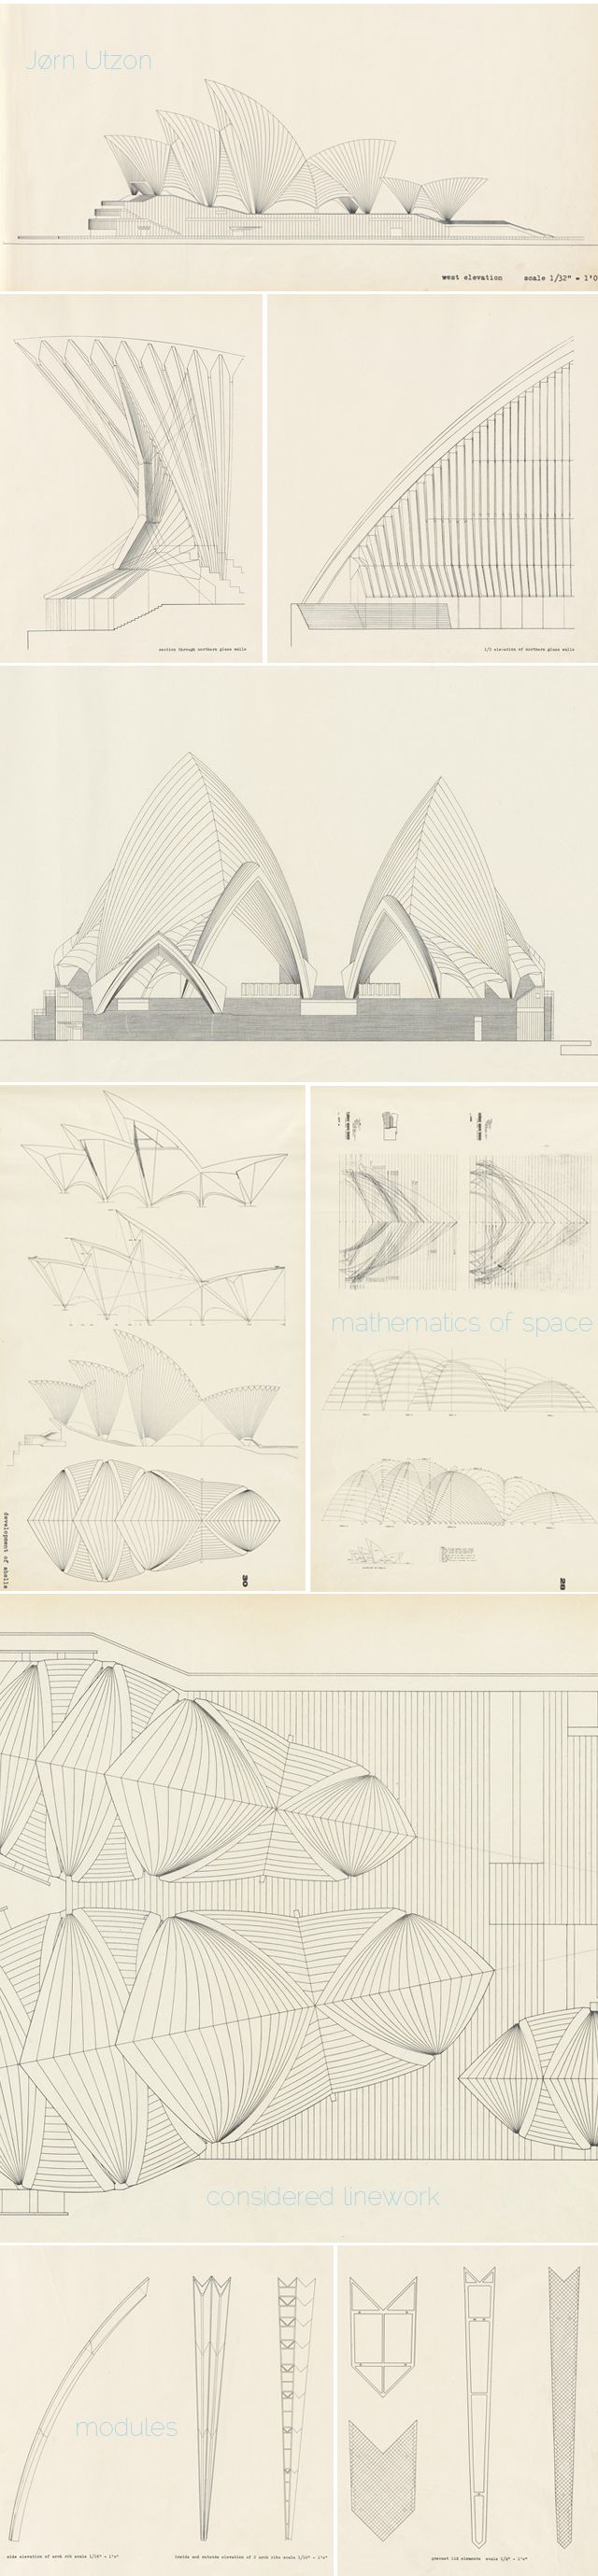 architectural drawings. The Spectacular Drawings For Sydney Opera House, Jørn Utzon (project) Architectural